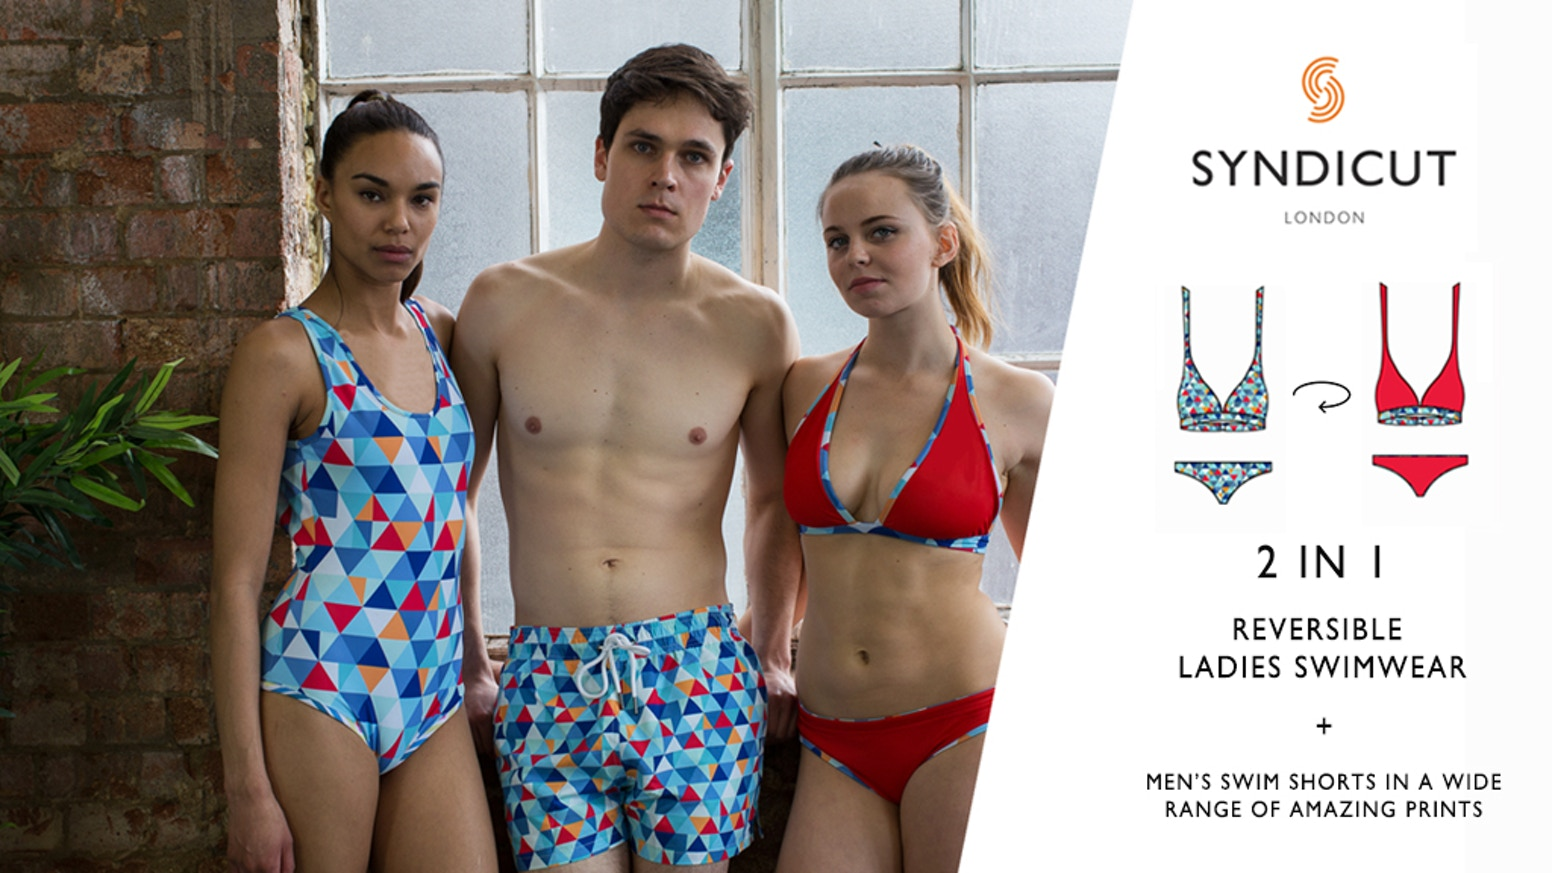 e8e13ef730376 The best swimwear for him and her - introducing a high quality reversible one  piece and bikini for her and bold printed shorts for him.